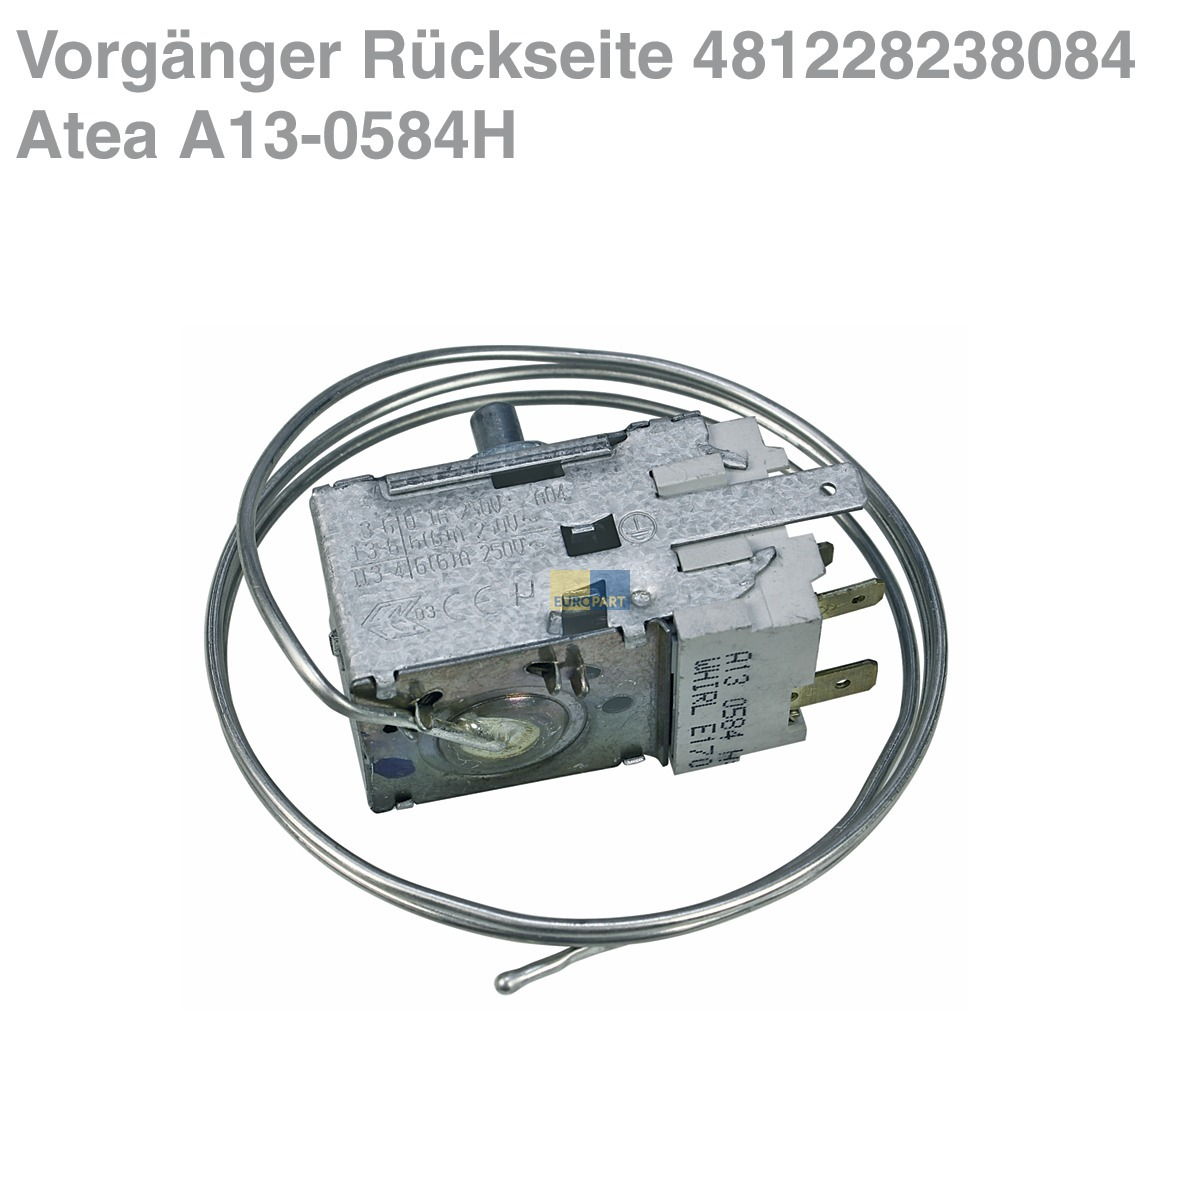 Thermostat K59 S1890 500 Ranco 915mm Kapillarrohr Abea Hausgerte Wiring Diagram 3x63mm Amp Ot